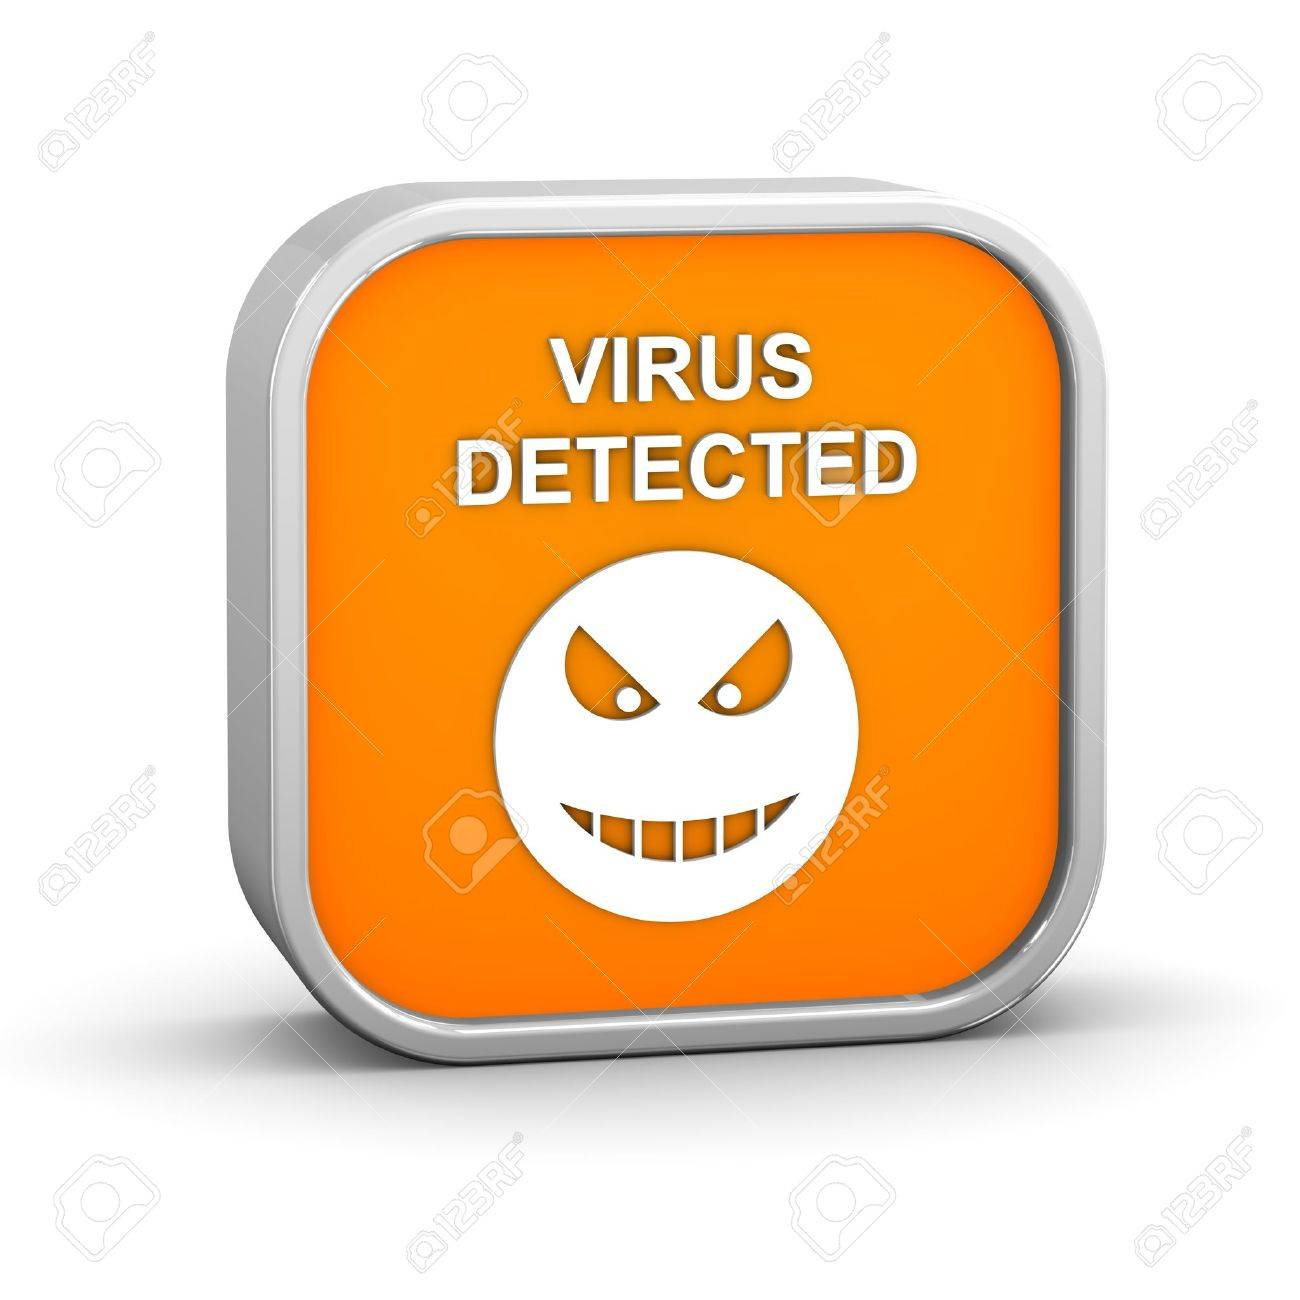 Virus Detected Sign on a white background. Part of a series. Stock Photo - 12017050